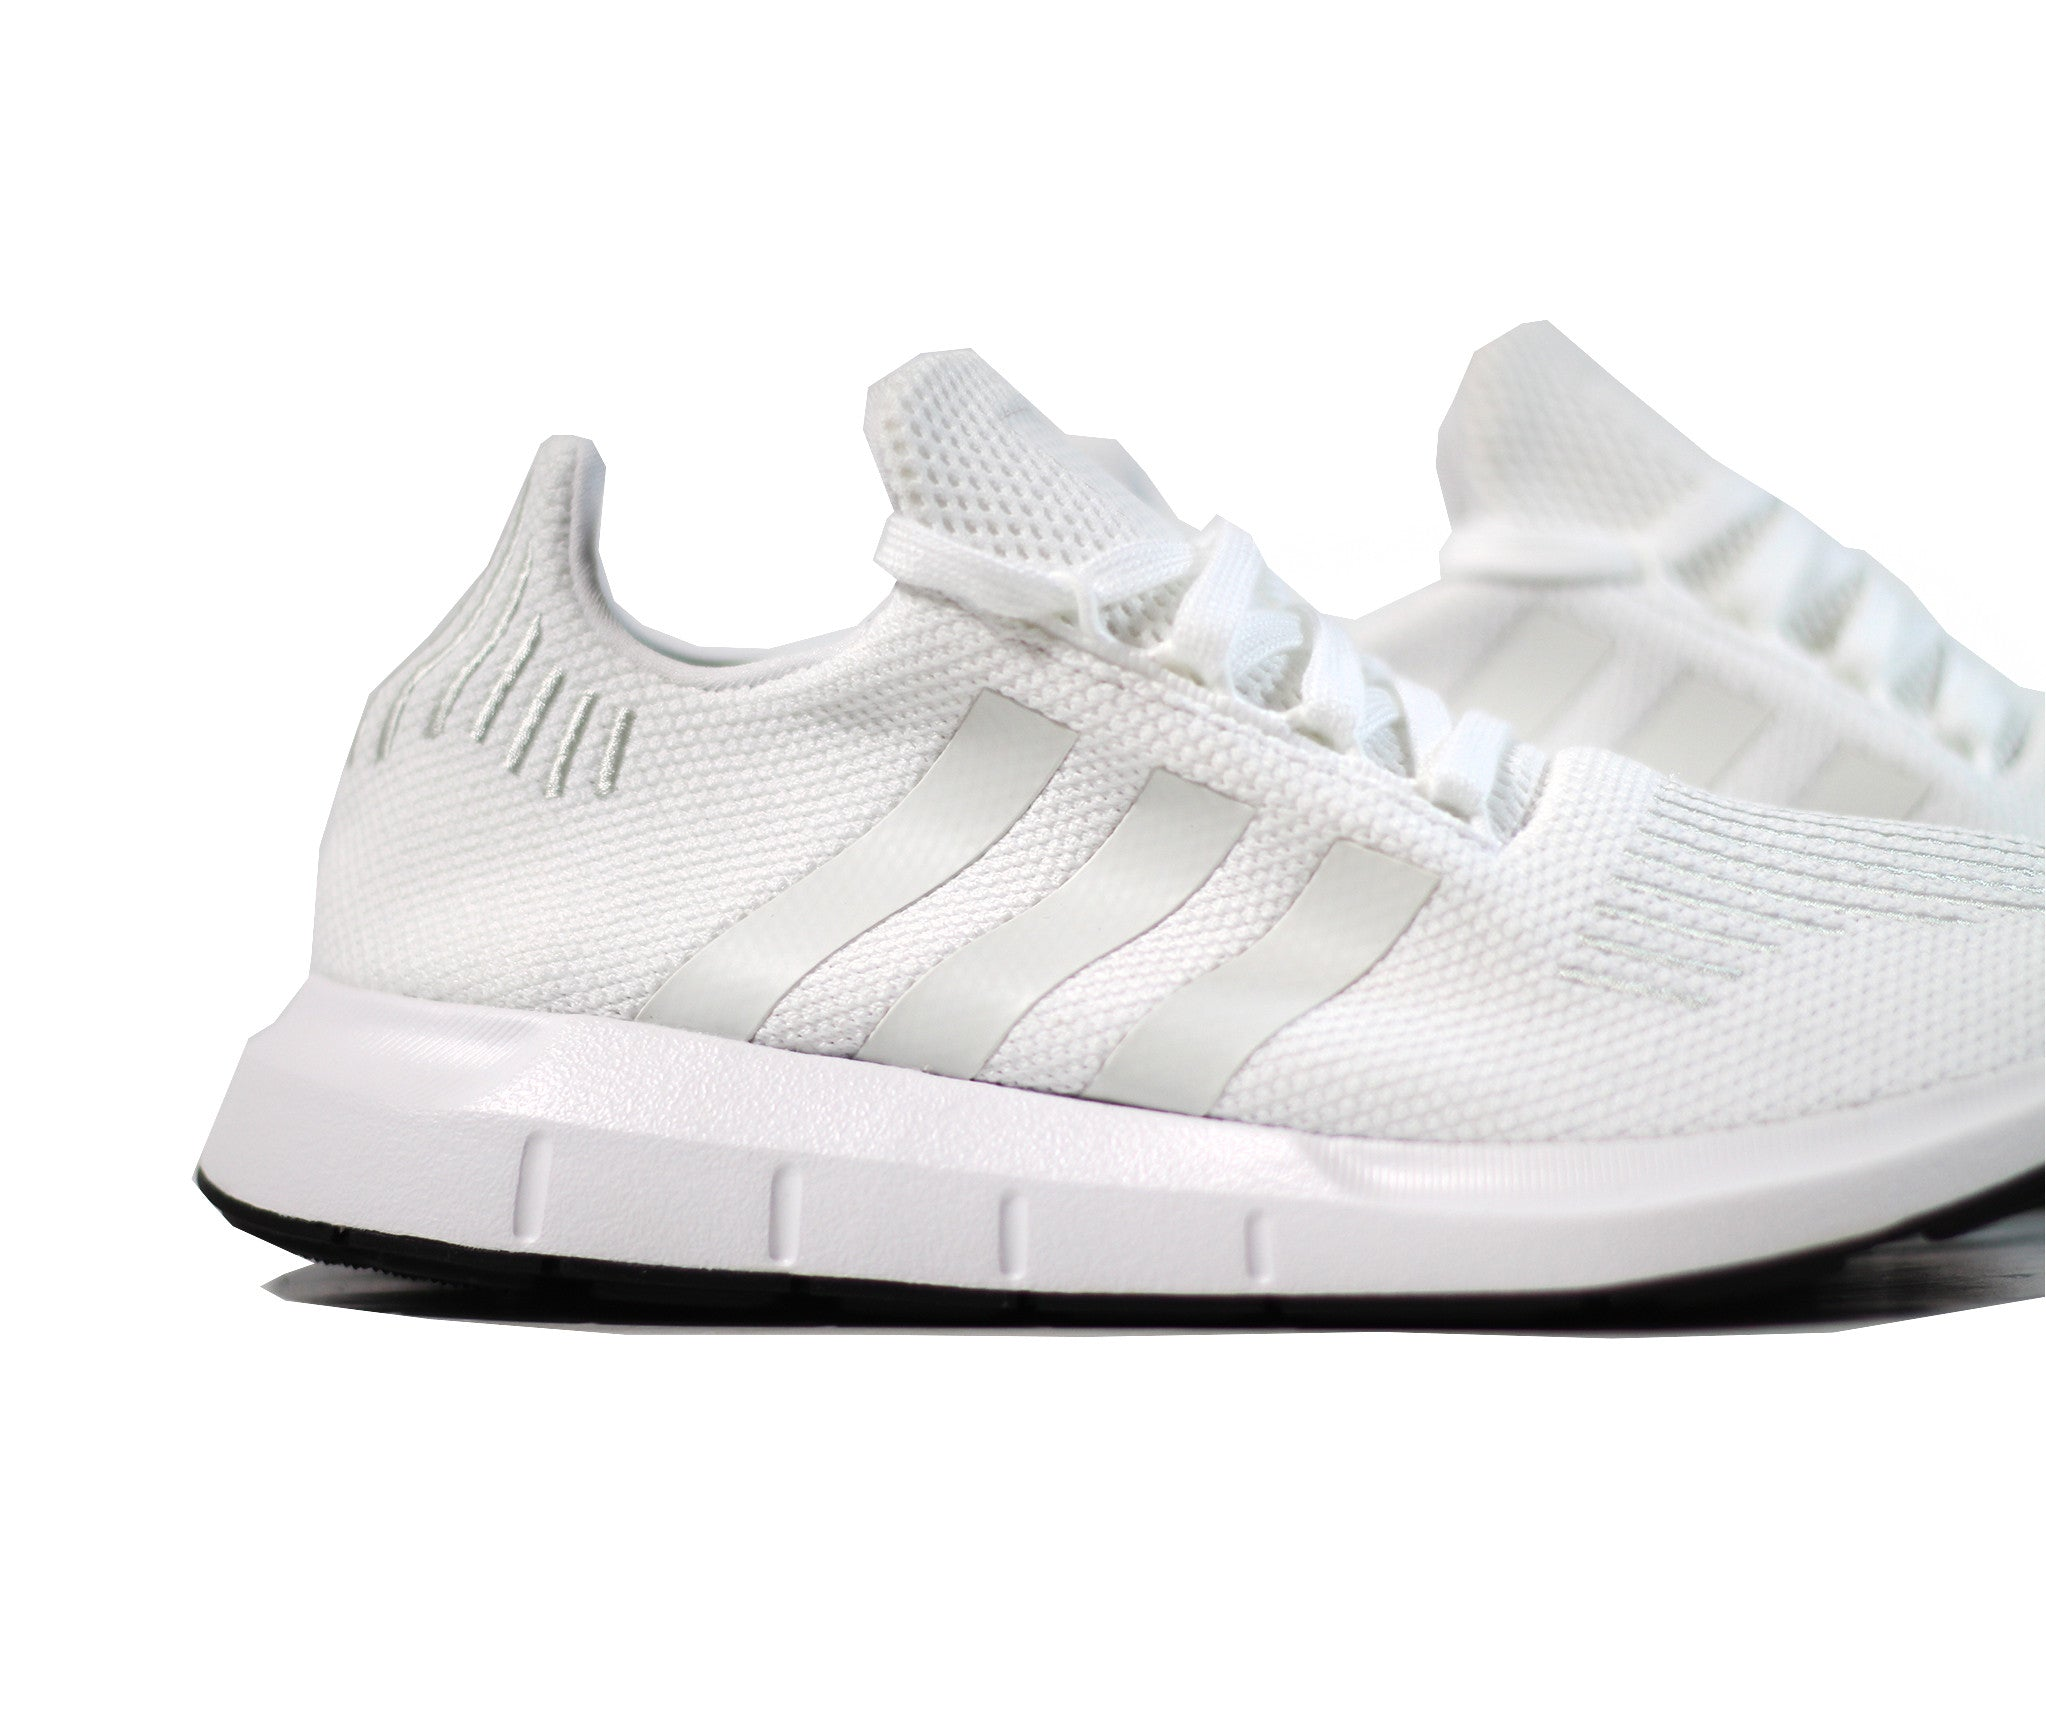 Adidas Swift Run - White White – History of New York Powered by ... 3301a3564